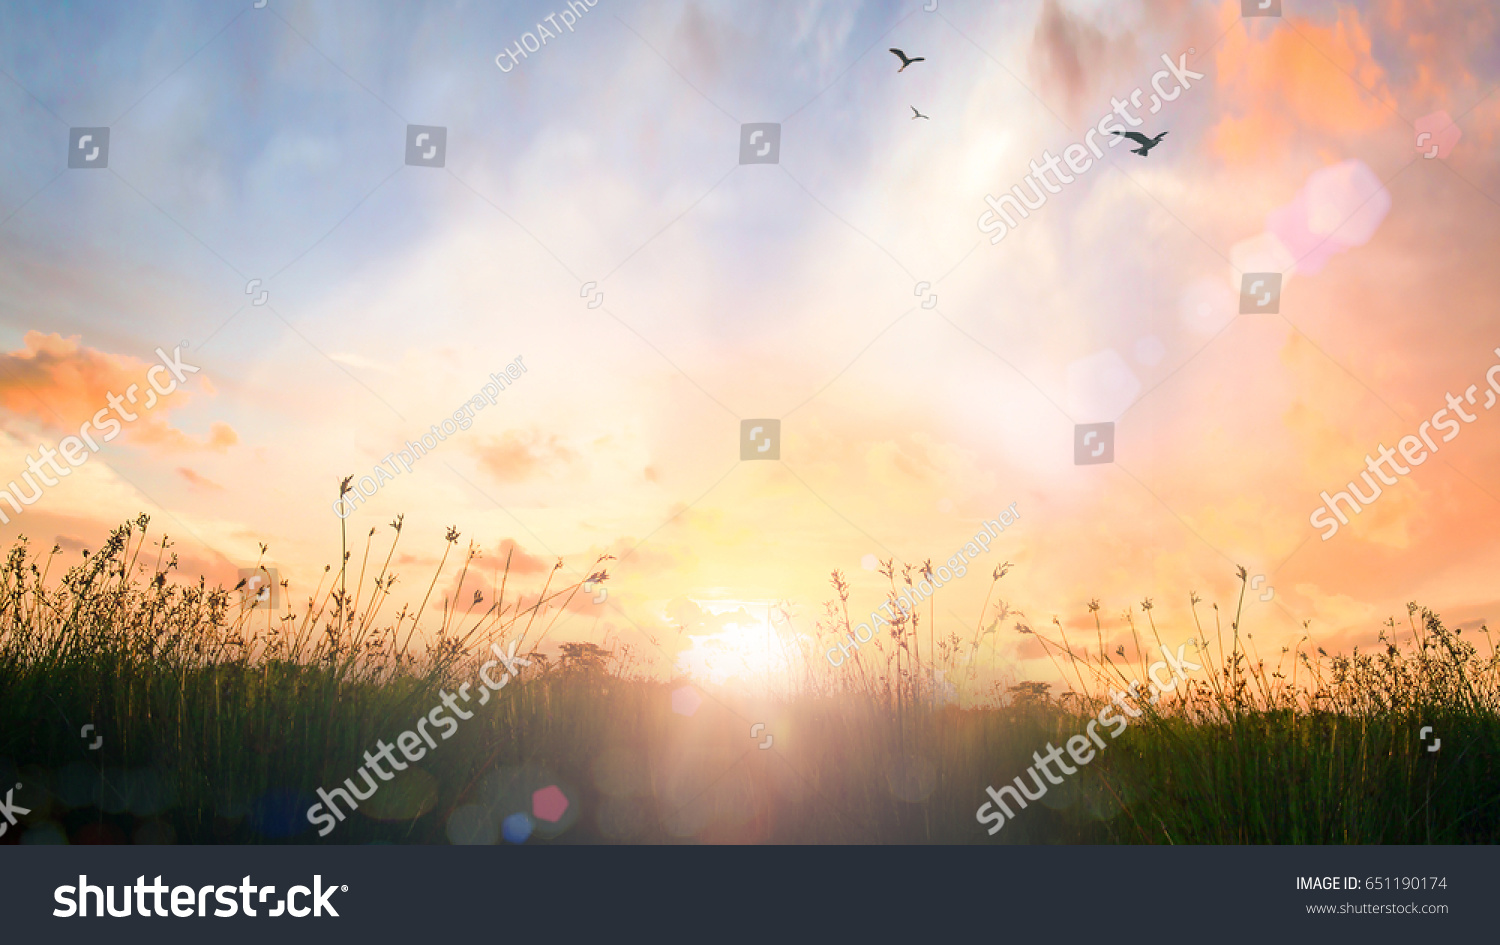 World environment day concept: Calm of country meadow sunrise landscape background #651190174